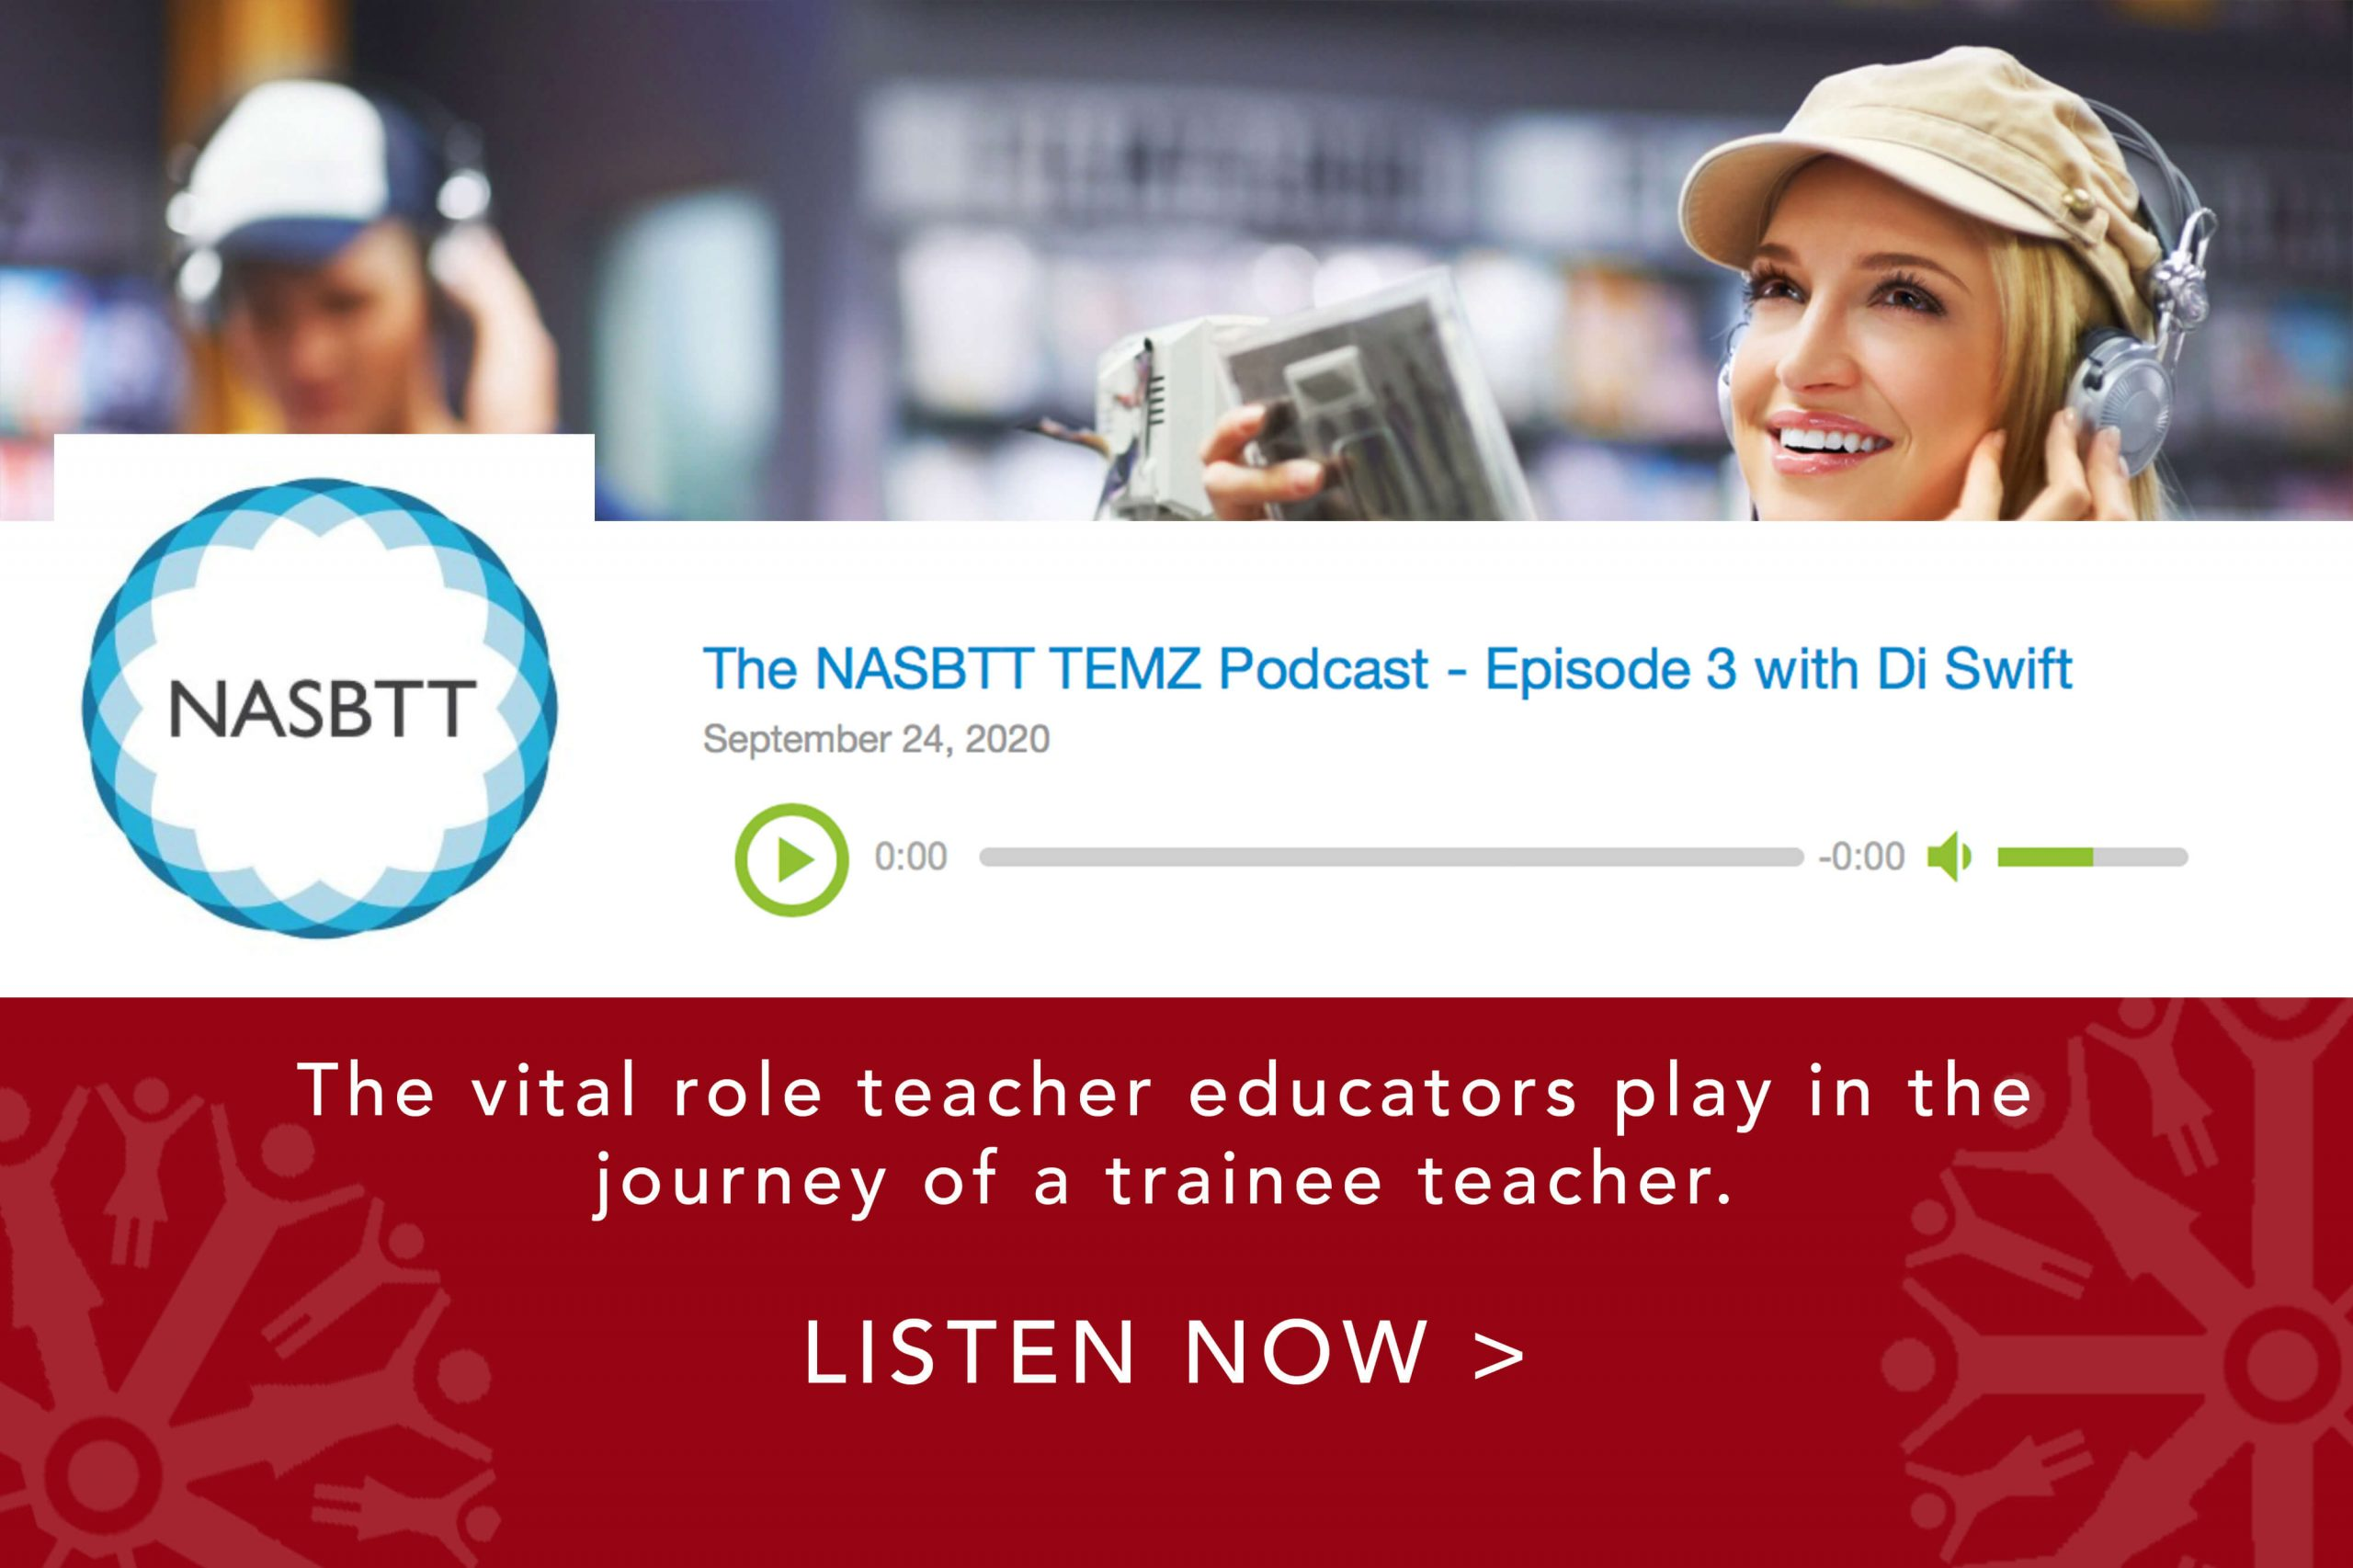 CTeach Regional Provider Di Swift, Executive SCITT Director at Keele and North Staffordshire Teacher Education. Di discusses the vital role teacher educators play in the journey of a trainee teacher. LISTEN NOW